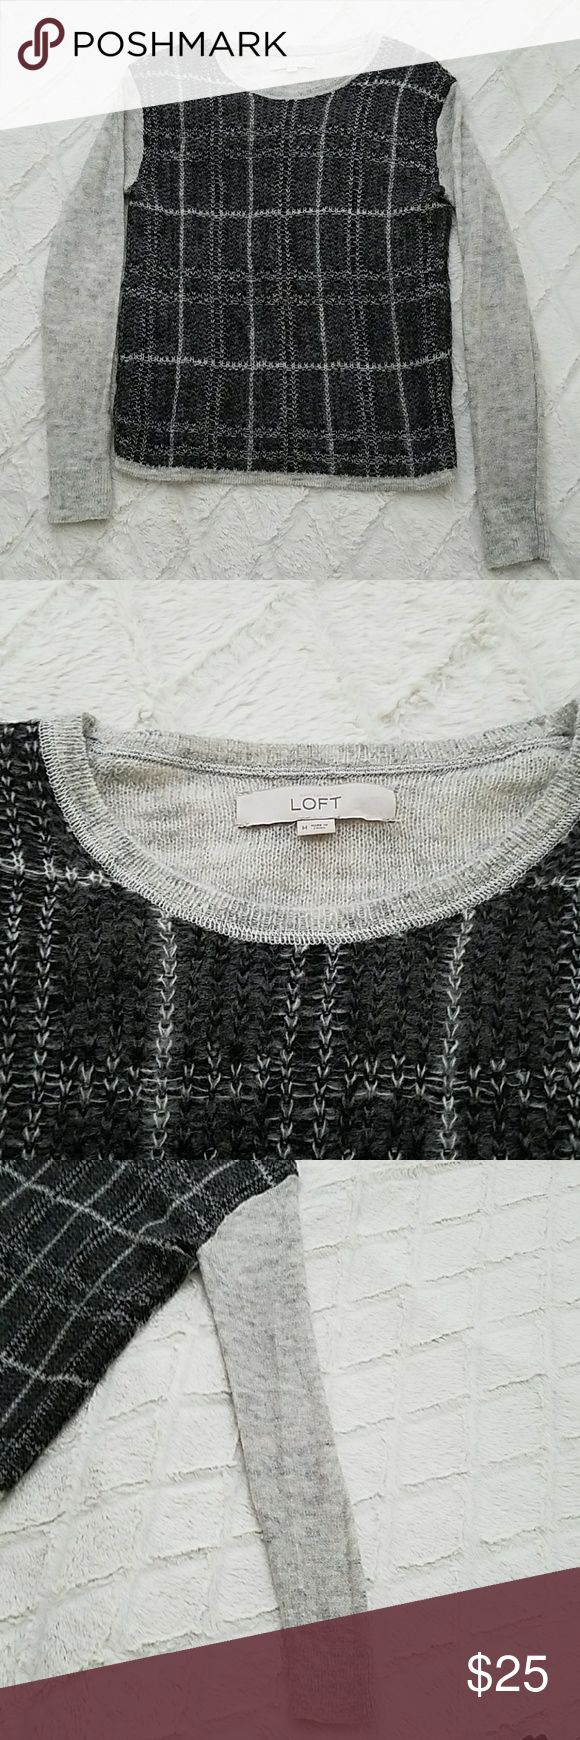 Ann Taylor Loft Sweater Checkered Dark Grey Med Anne Taylor Loft Dark Grey Front  Light grey Sleeves and Back Medium Lightweight 39% Acrylic 35%Nylon 26% Mohair Great Condition like new!! LOFT Sweaters Crew & Scoop Necks